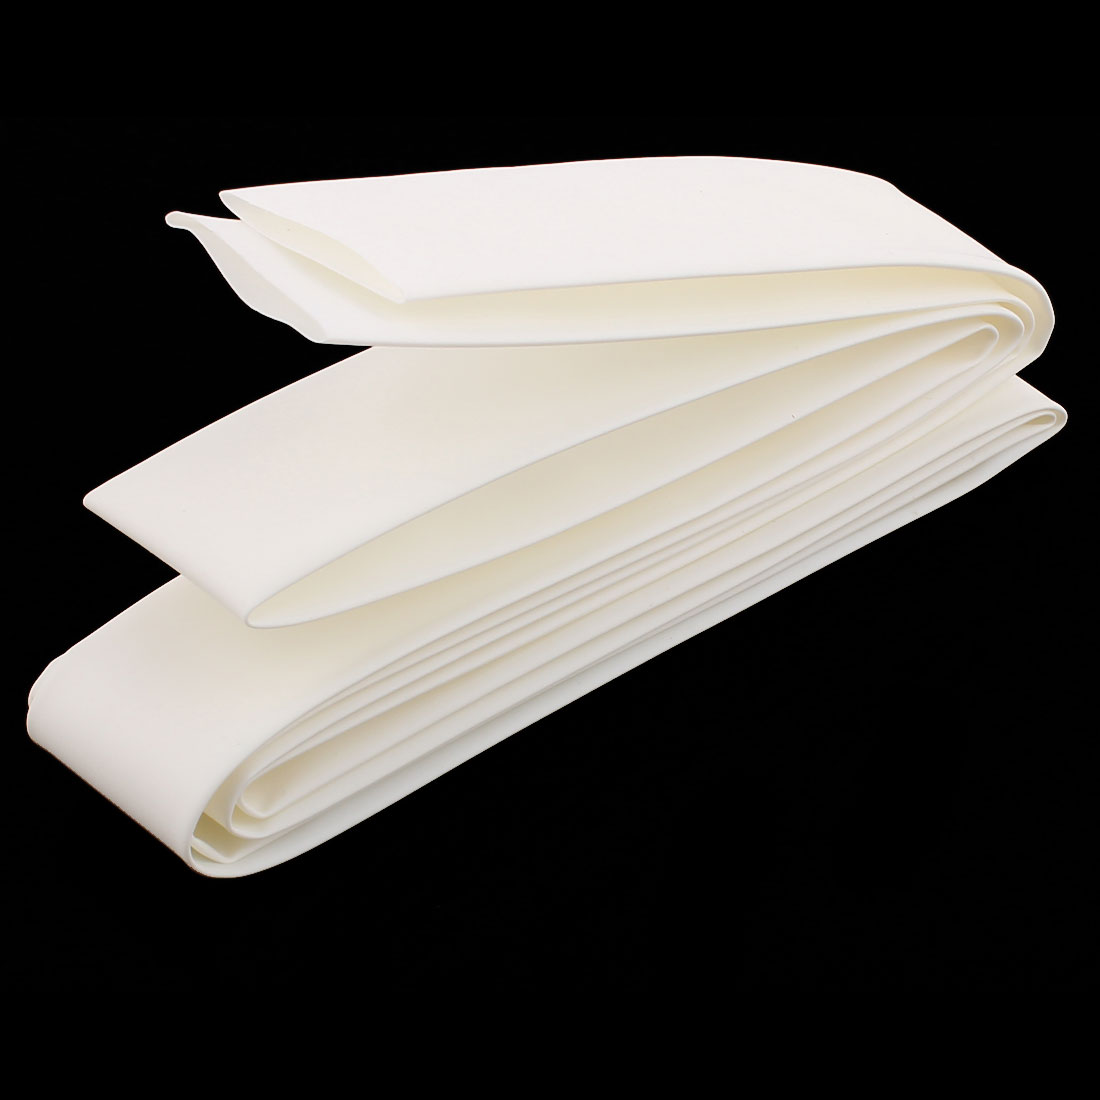 1.6m Length 20mm Diameter Heat Shrinkable Tube Polyolefin White